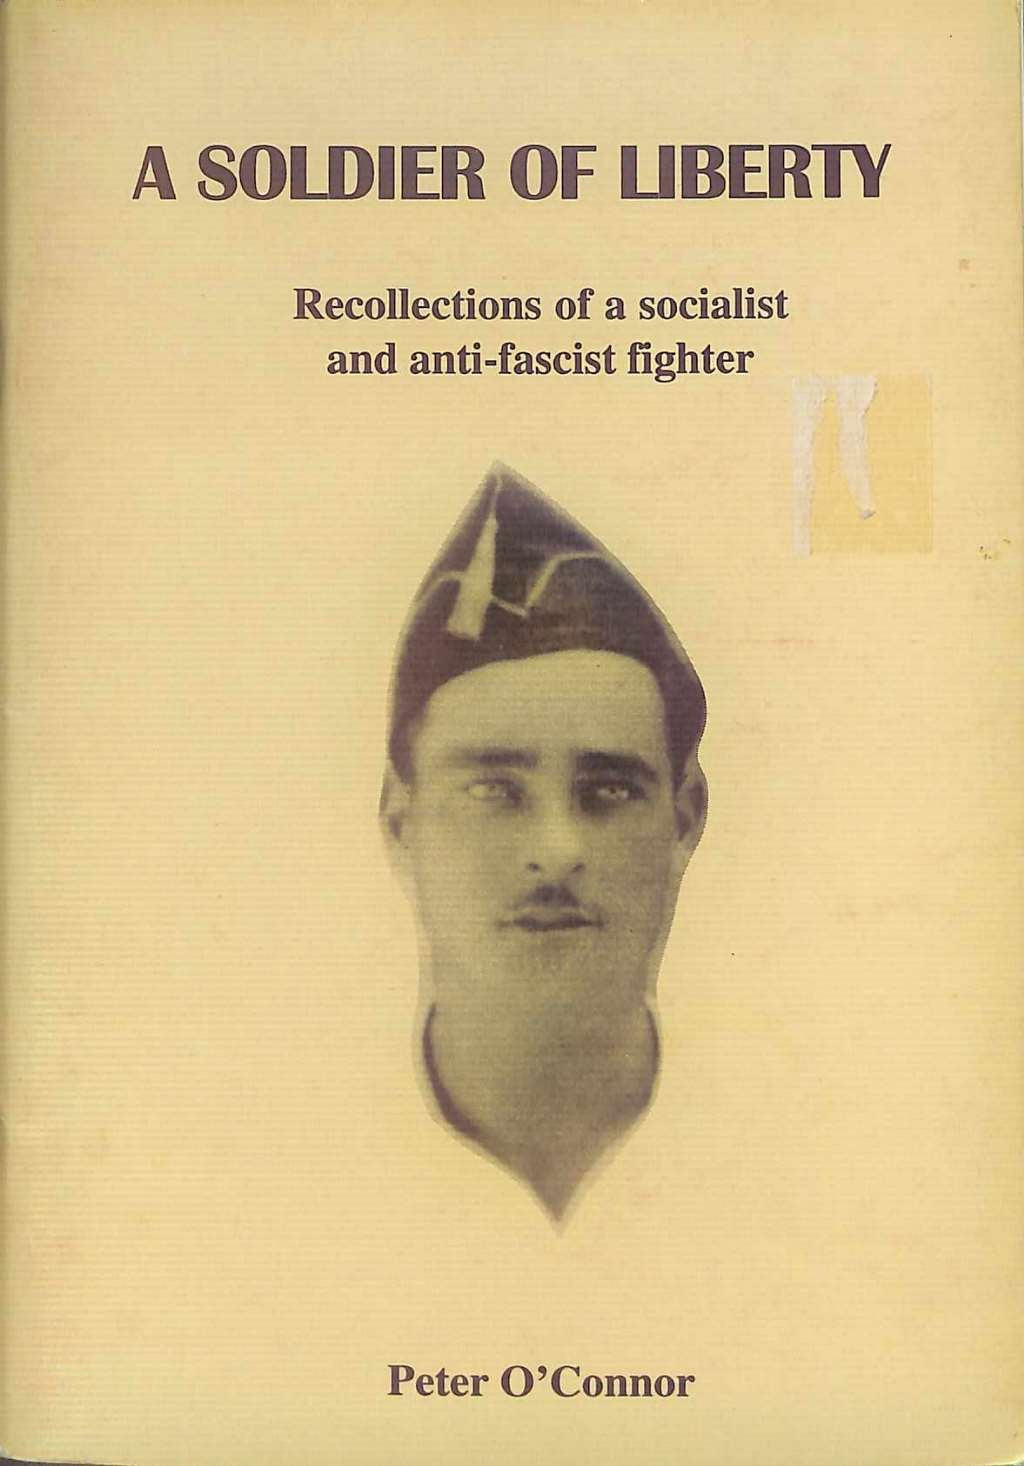 A soldier of liberty: Recollections of a socialist and anti-fascist fighter